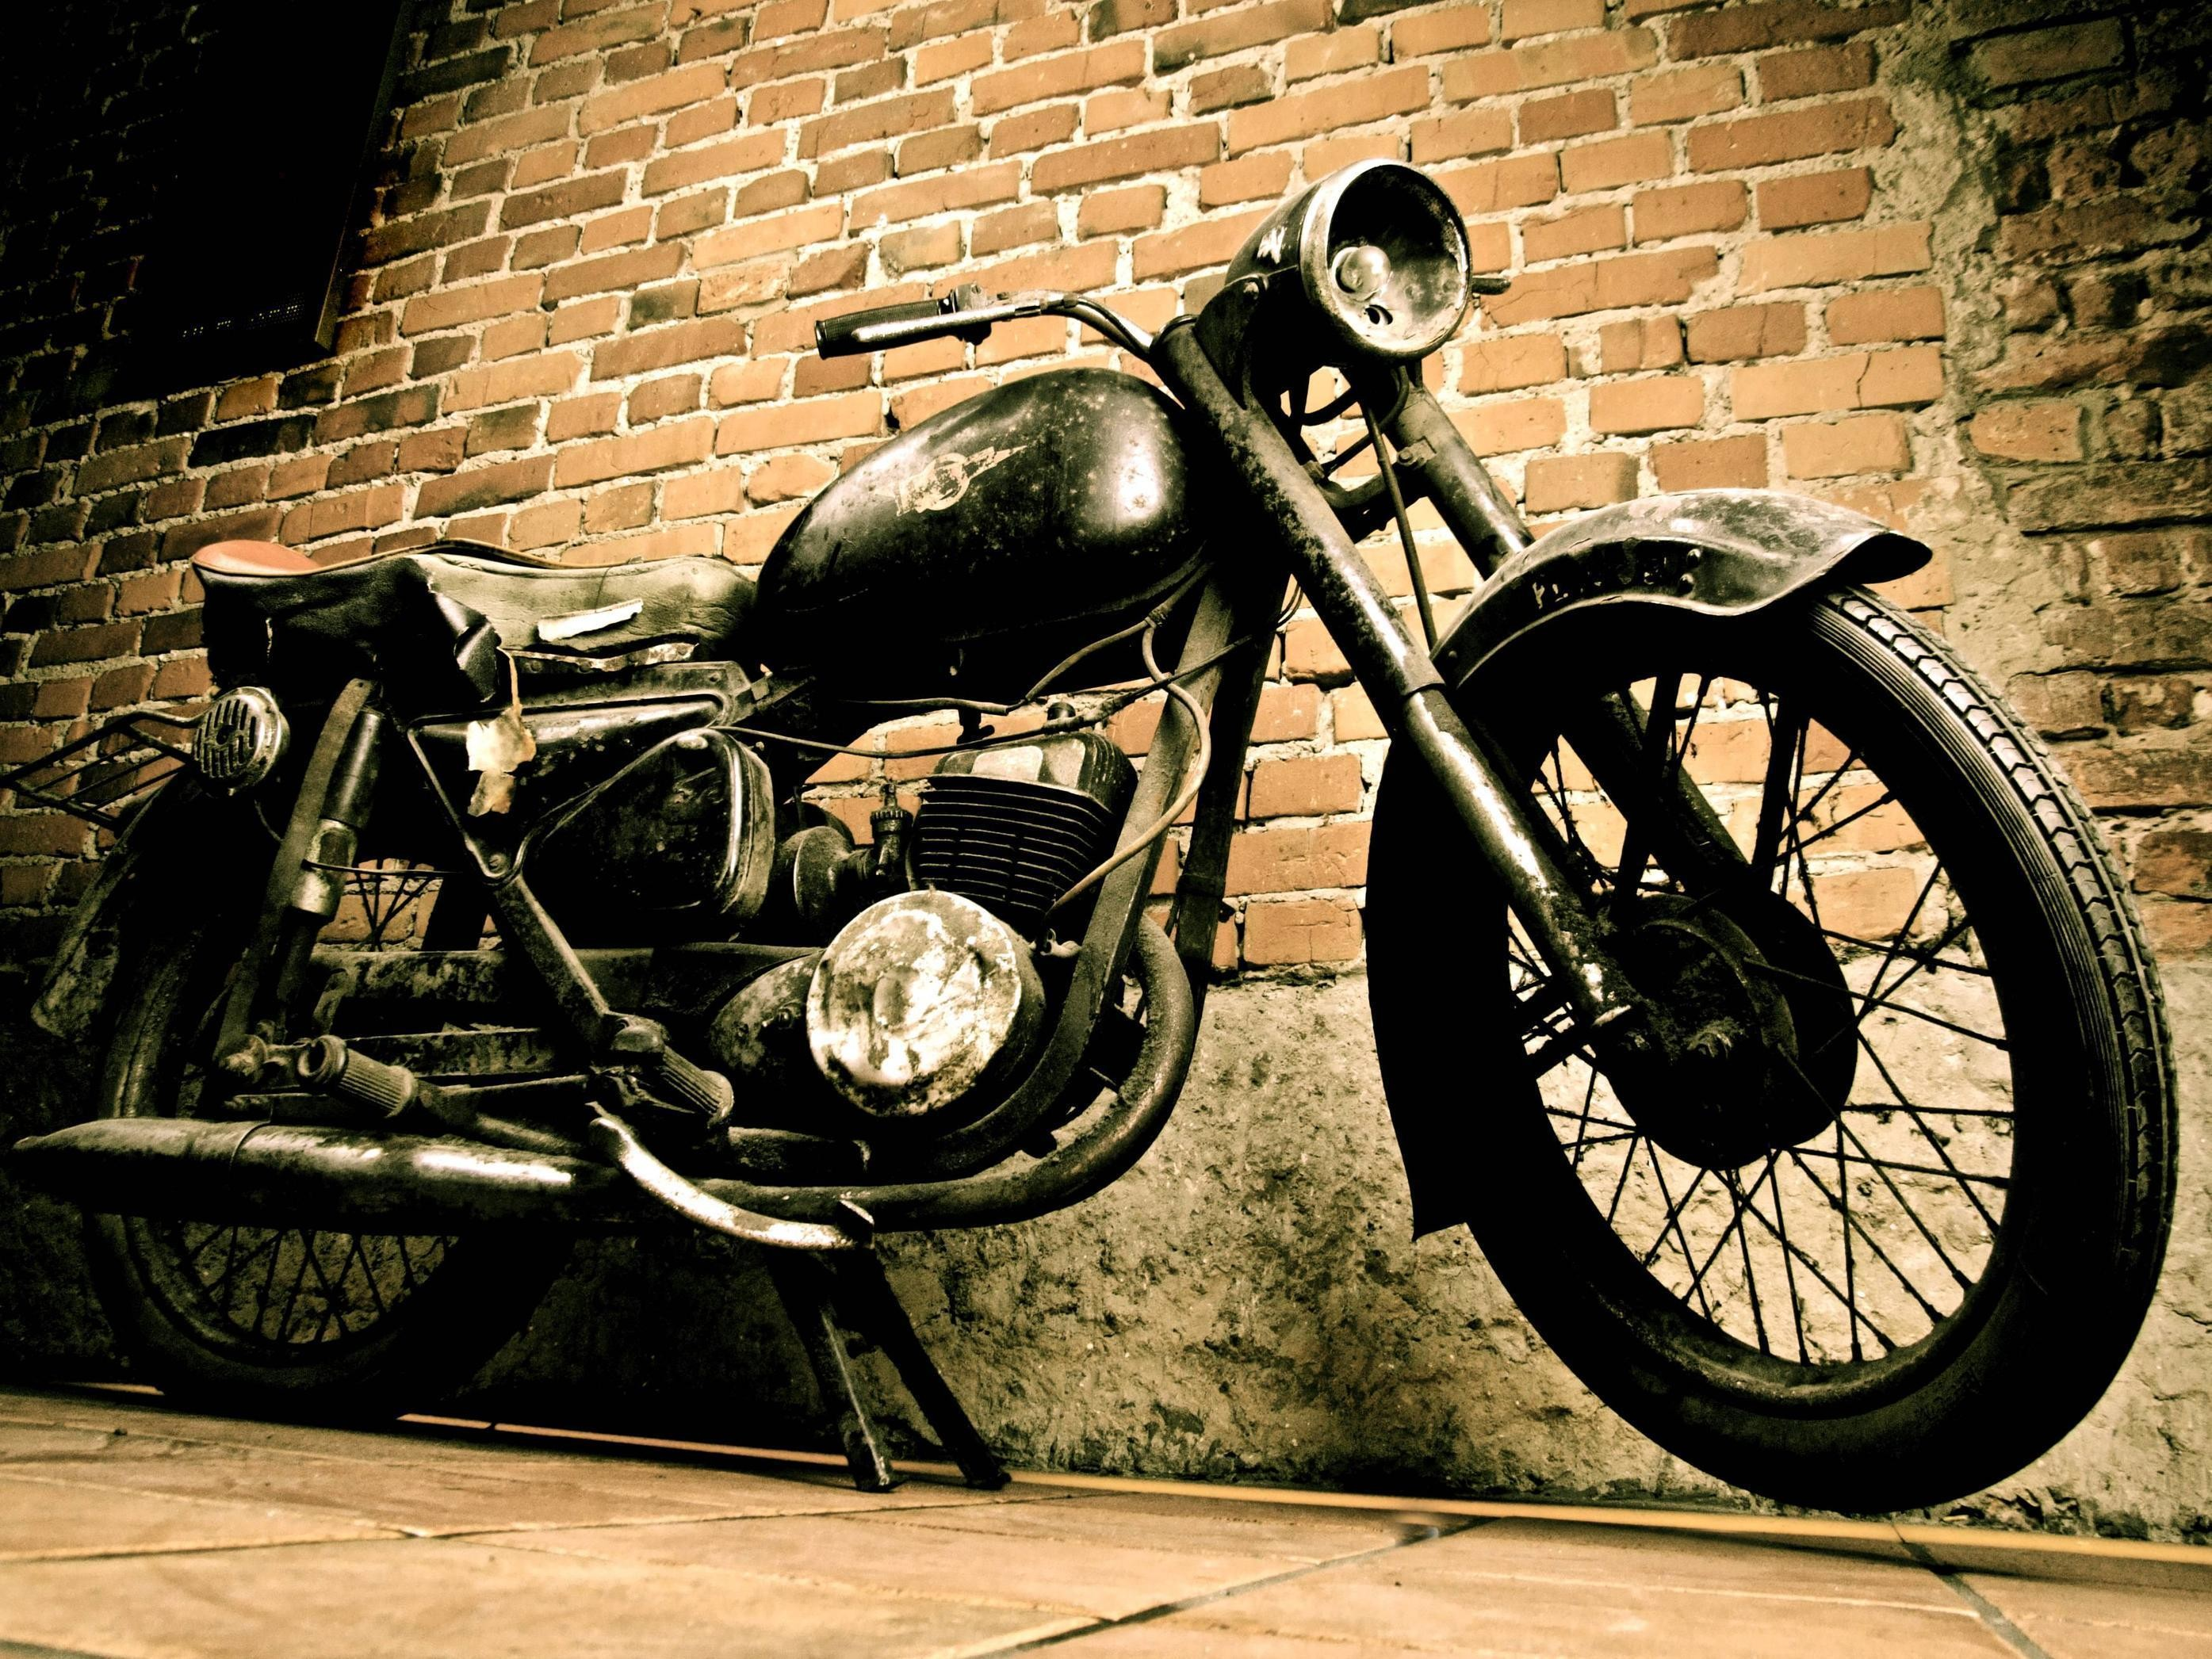 Res: 2790x2093, Old Motorcycles | MotoCircle